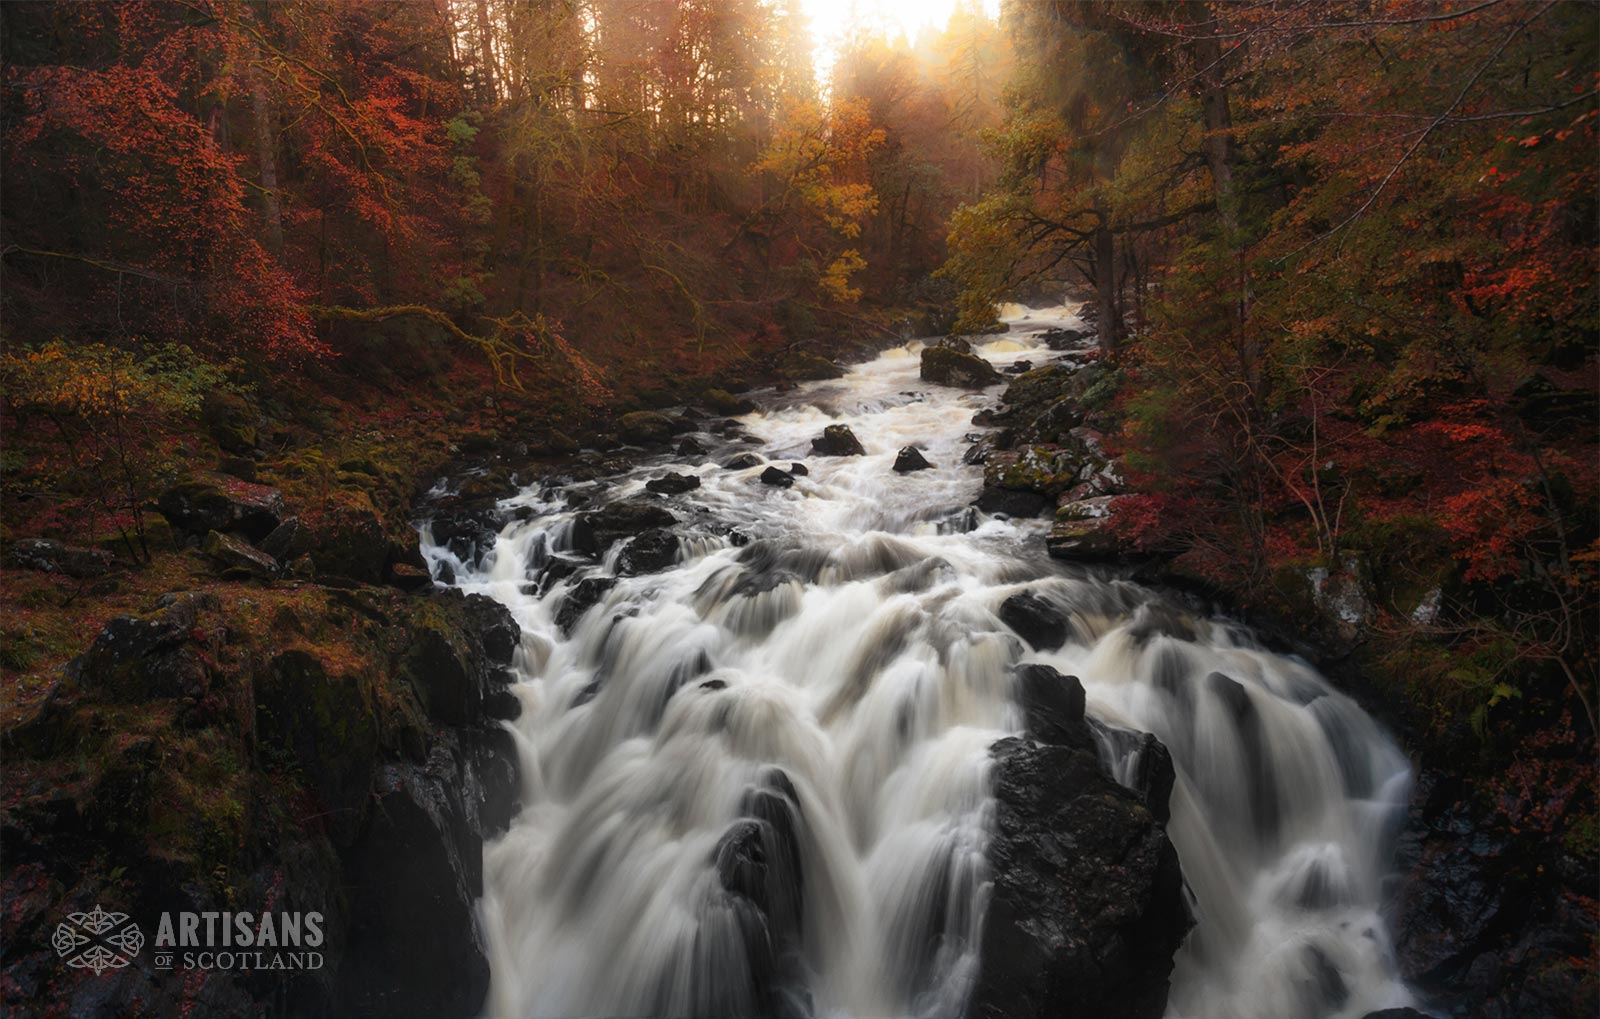 River Tay through Dunkeld Forrest at Sunset - The most beautiful places in Scotland